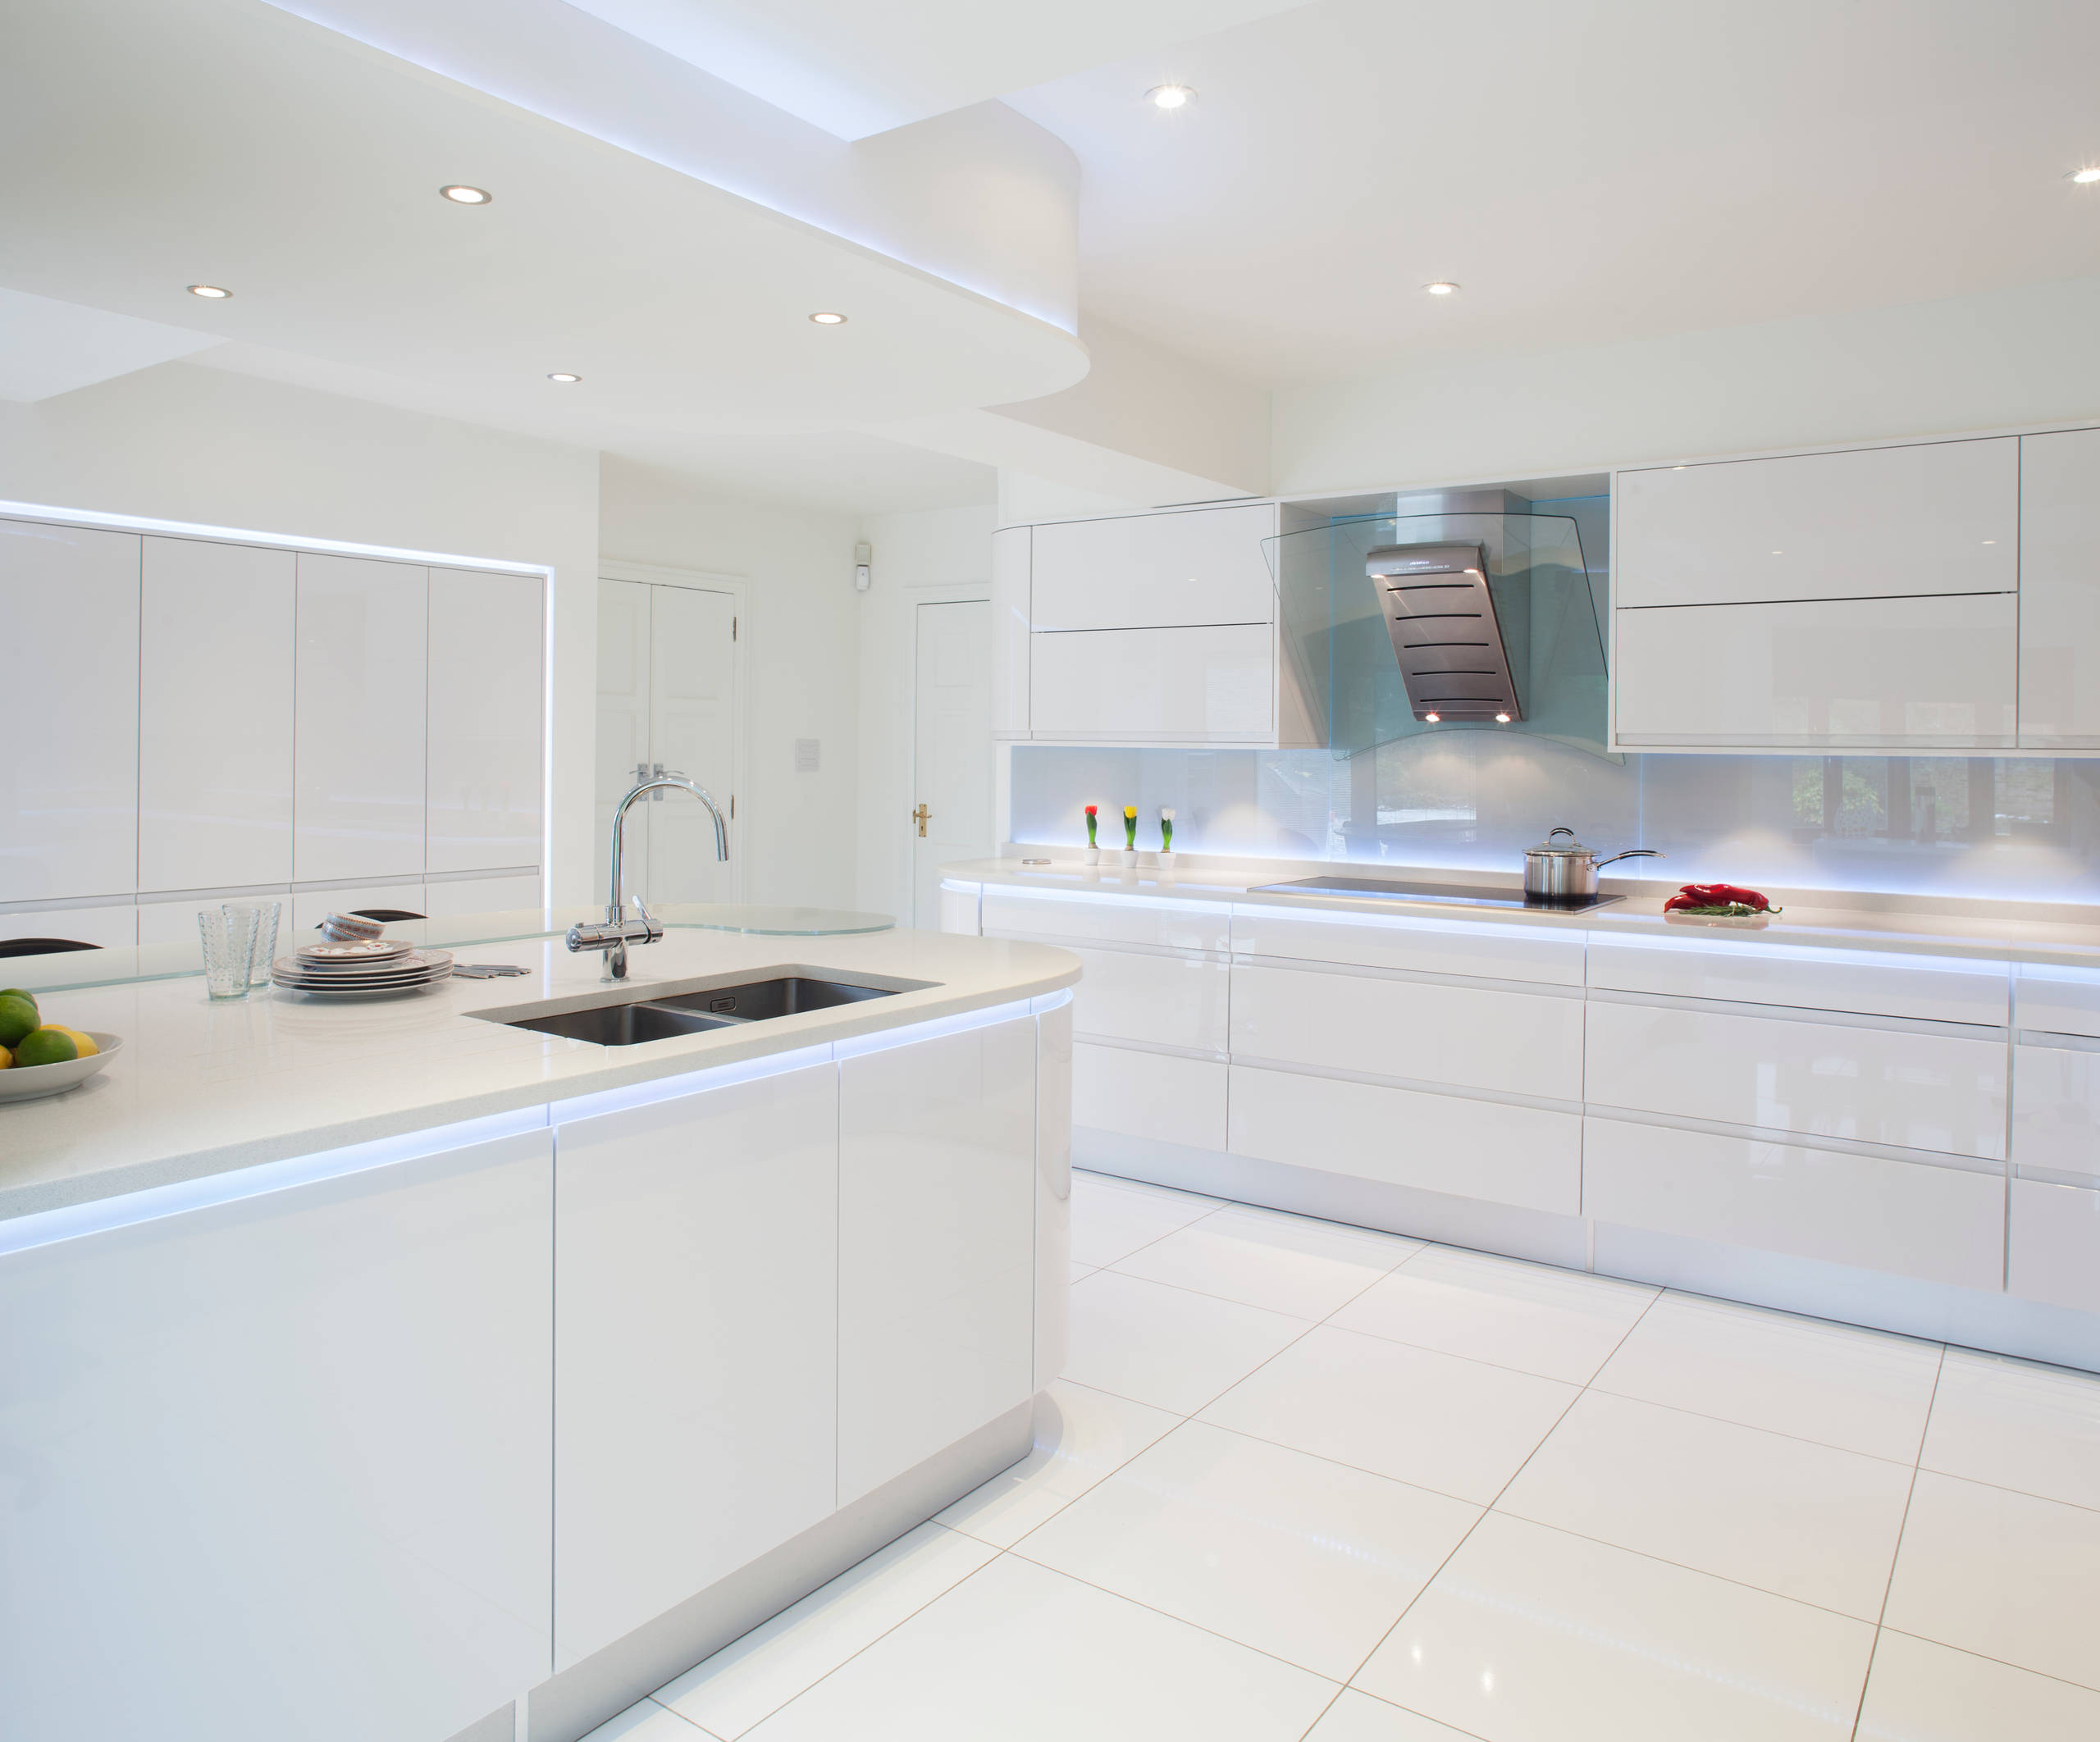 75 Beautiful Kitchen With Recycled Glass Countertops Pictures Ideas January 2021 Houzz